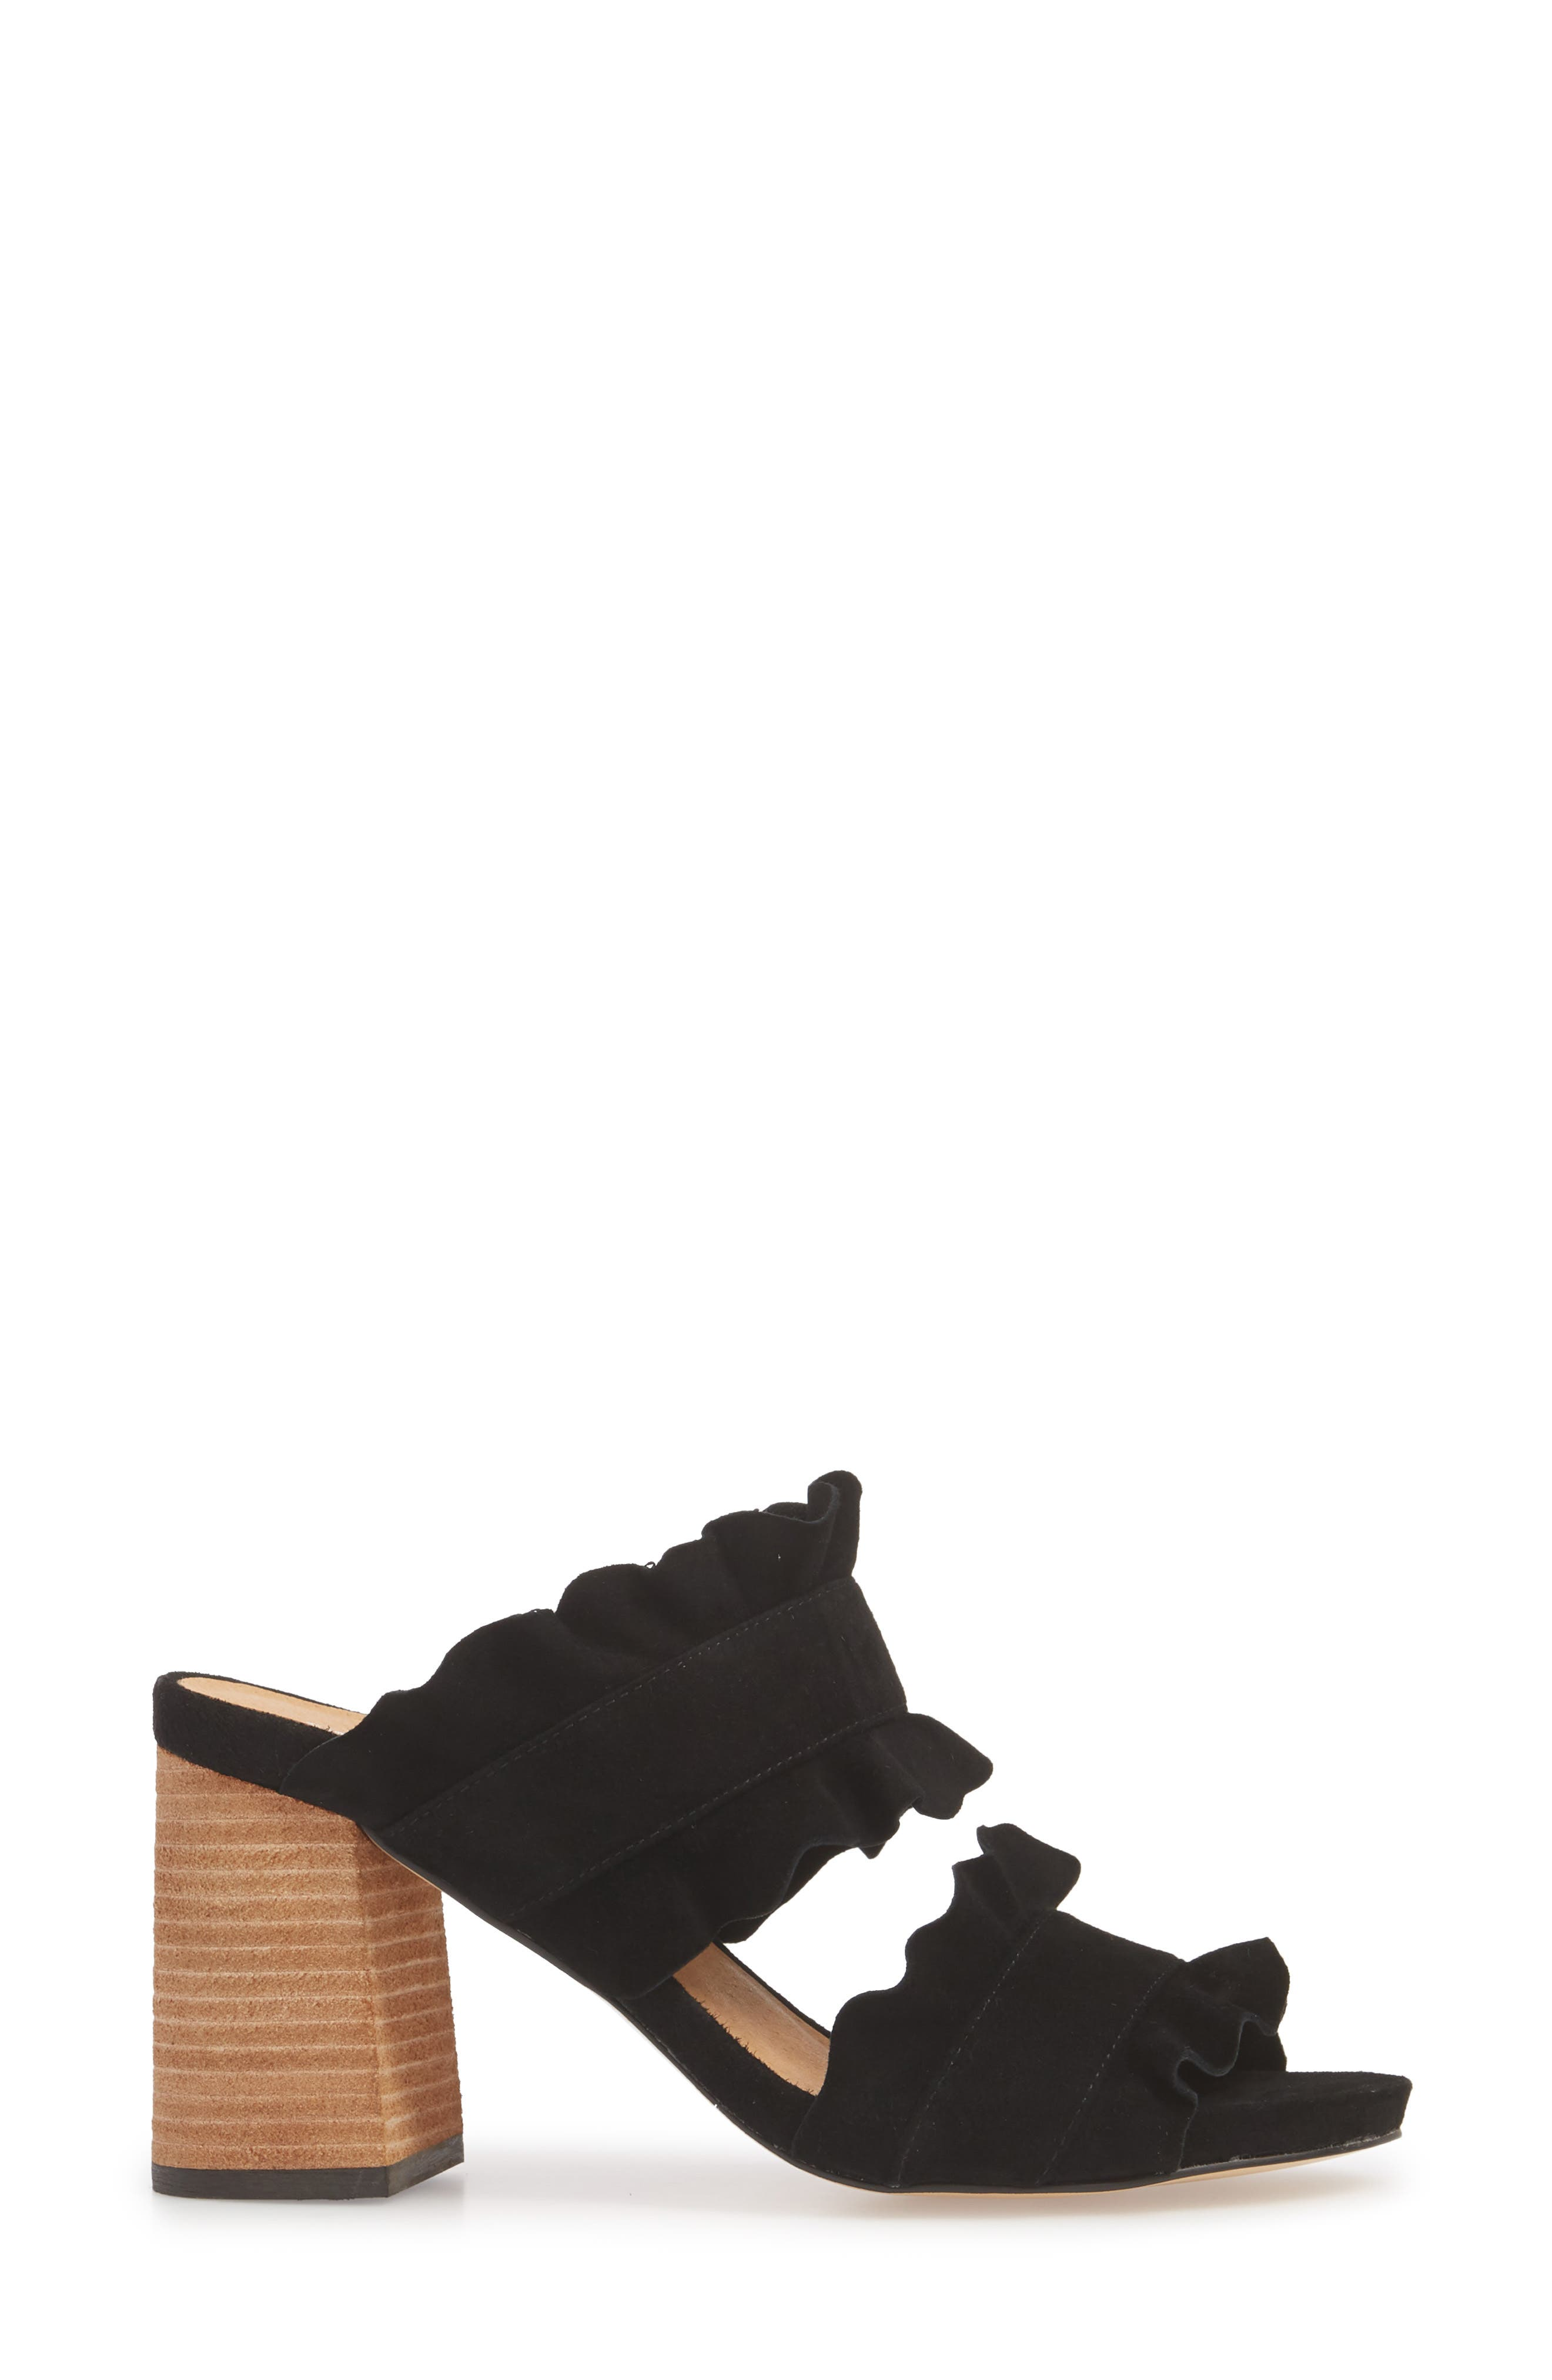 Rosie Ruffle Slide Sandal,                             Alternate thumbnail 3, color,                             BLACK